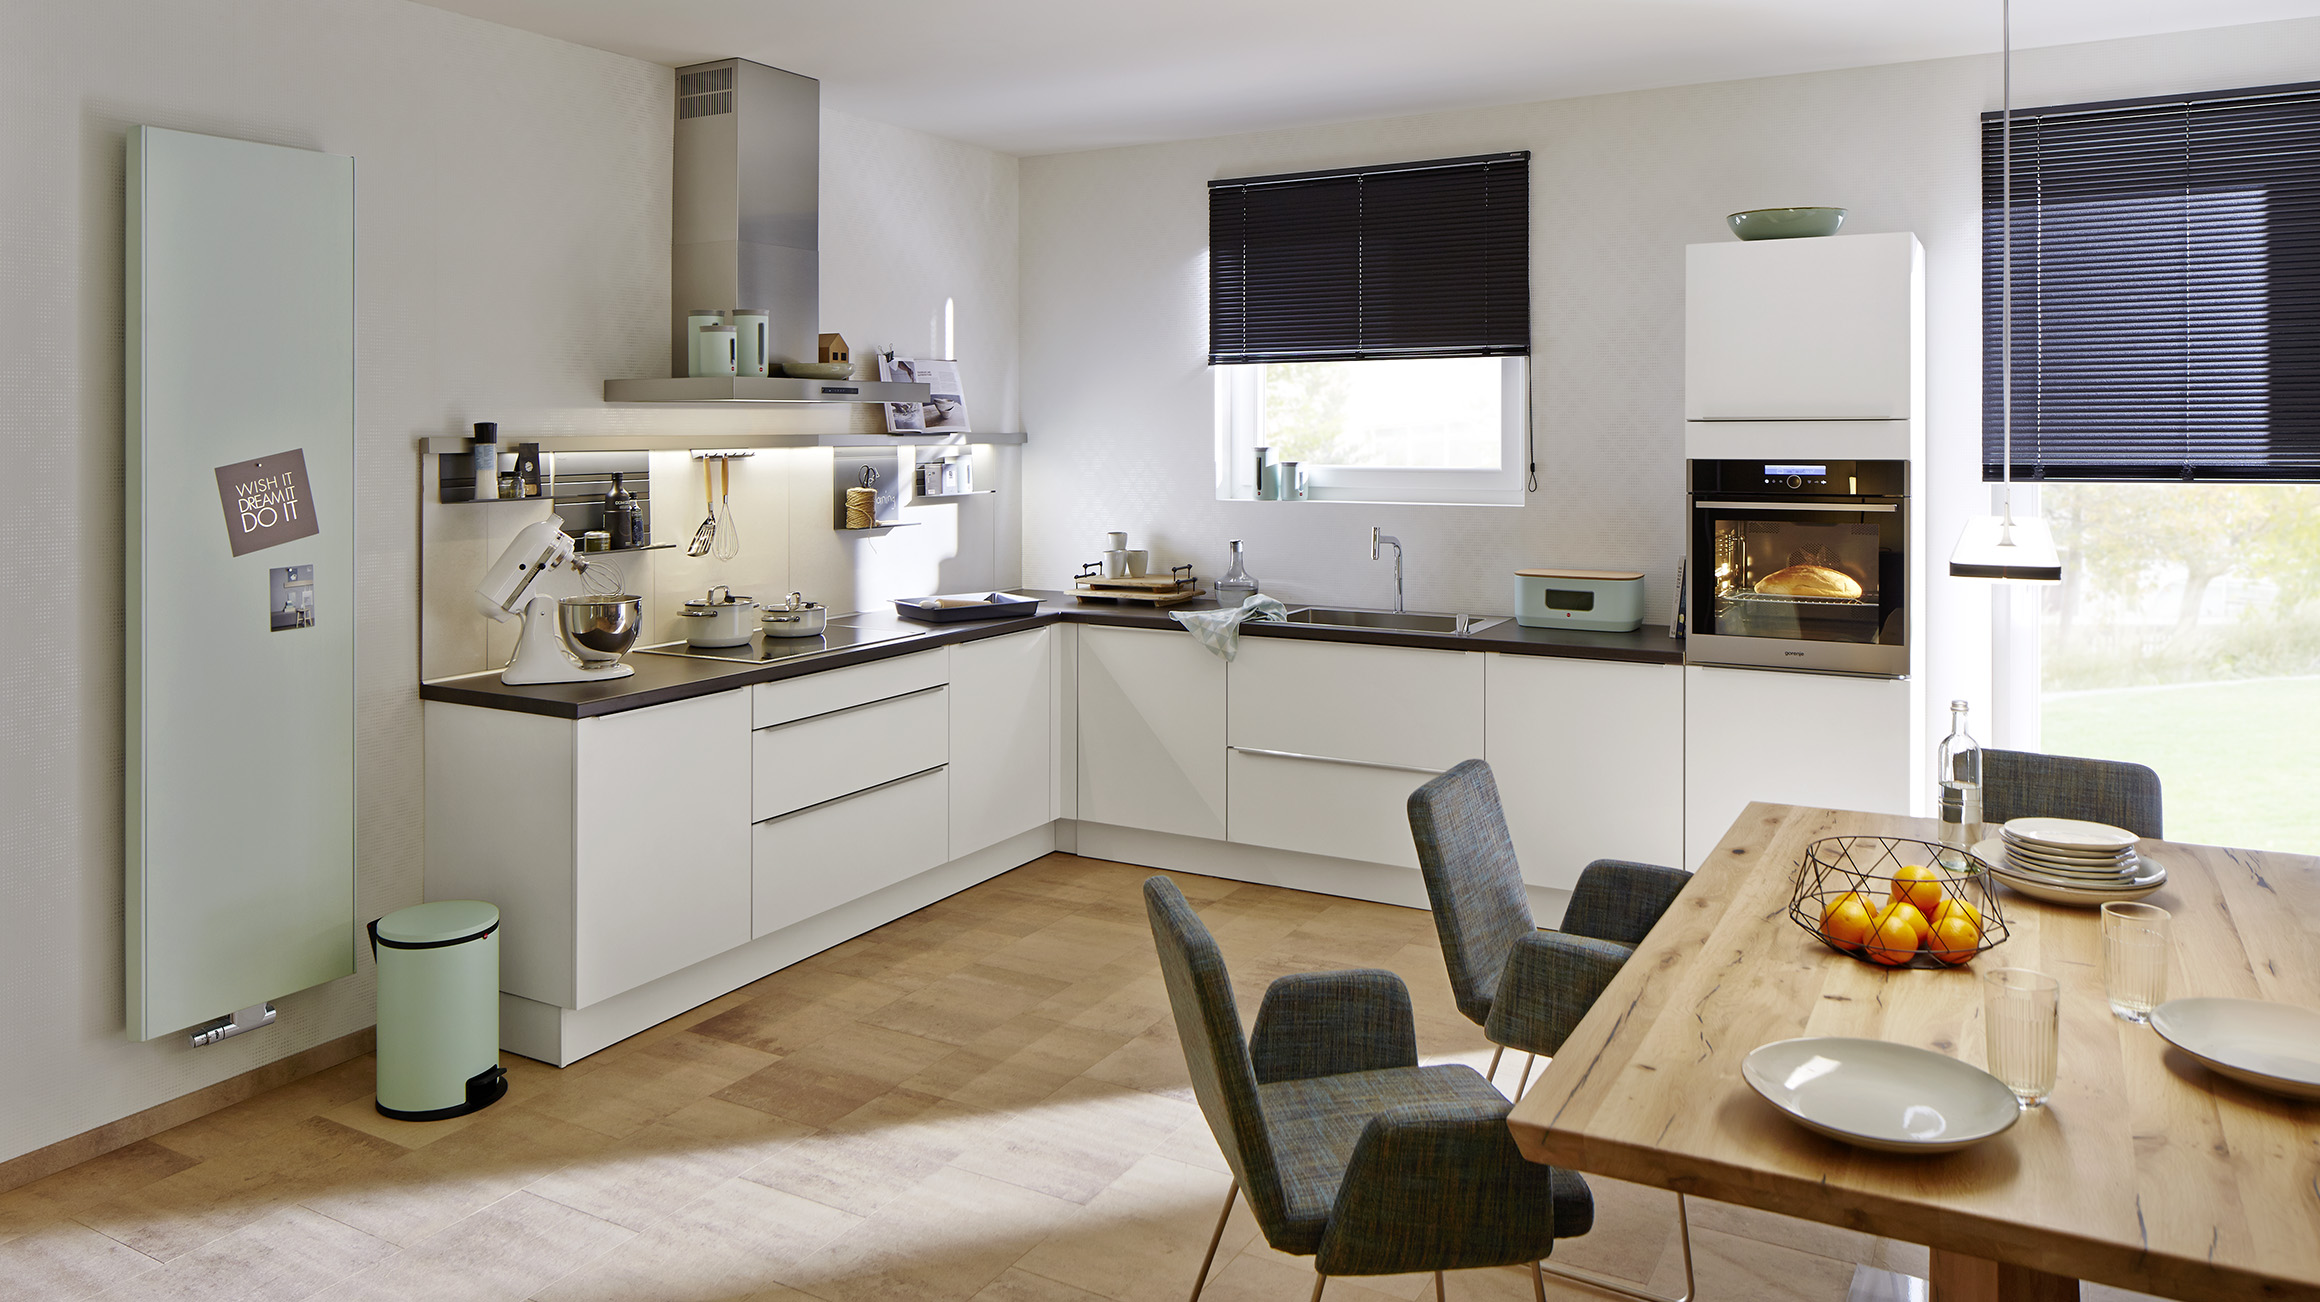 adding comfort to your kitchen tips hansgrohe int on 91 Comfortable Kitchen Design Tips 2020 id=41947